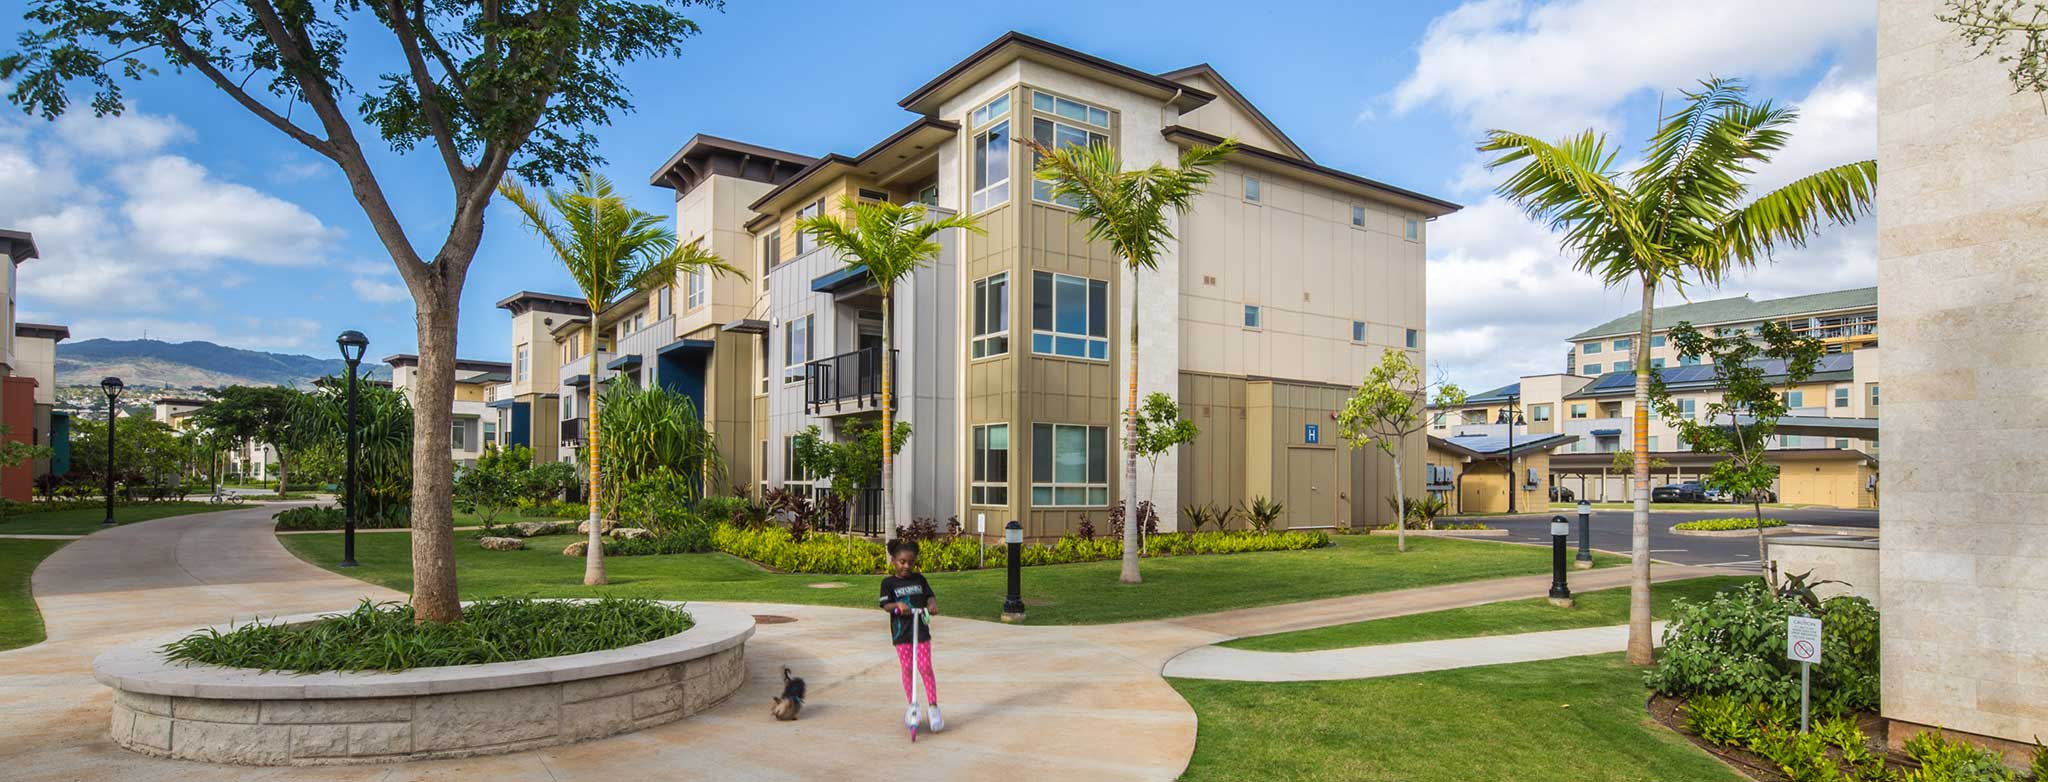 Kapolei Lofts